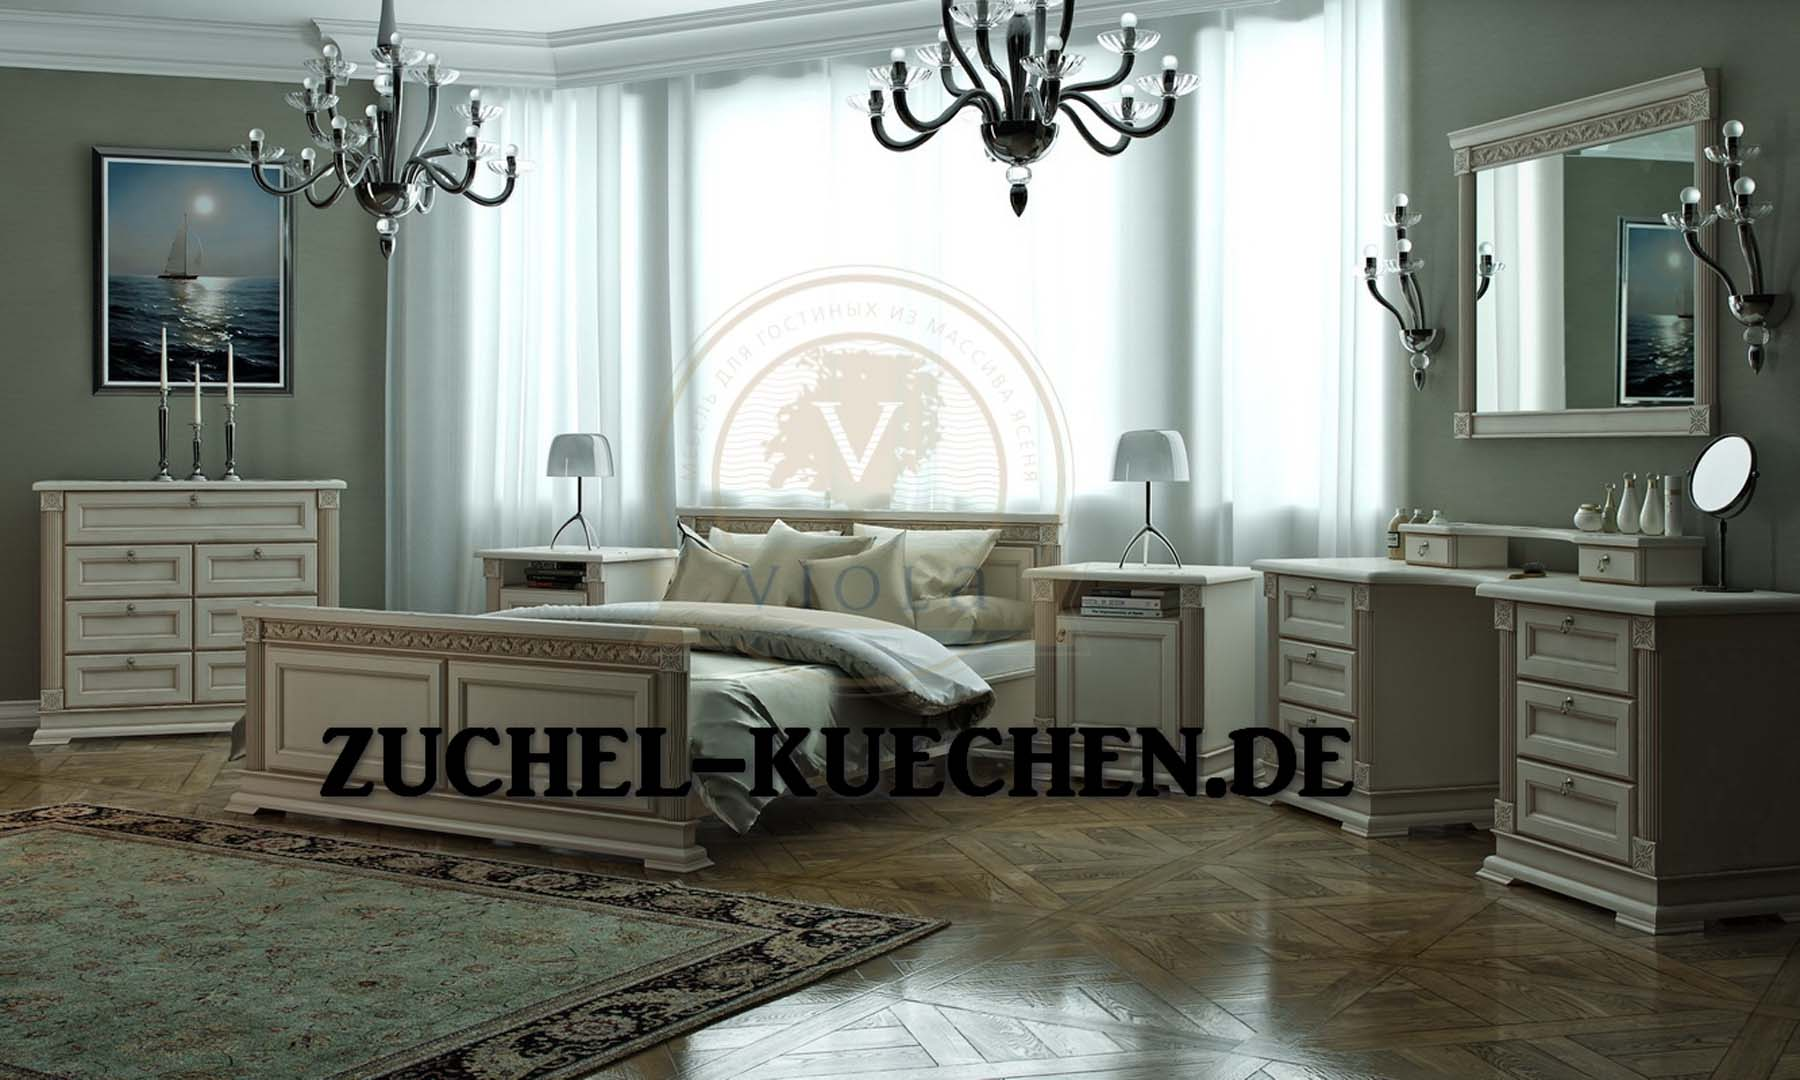 schlafzimmer zuchel k che. Black Bedroom Furniture Sets. Home Design Ideas